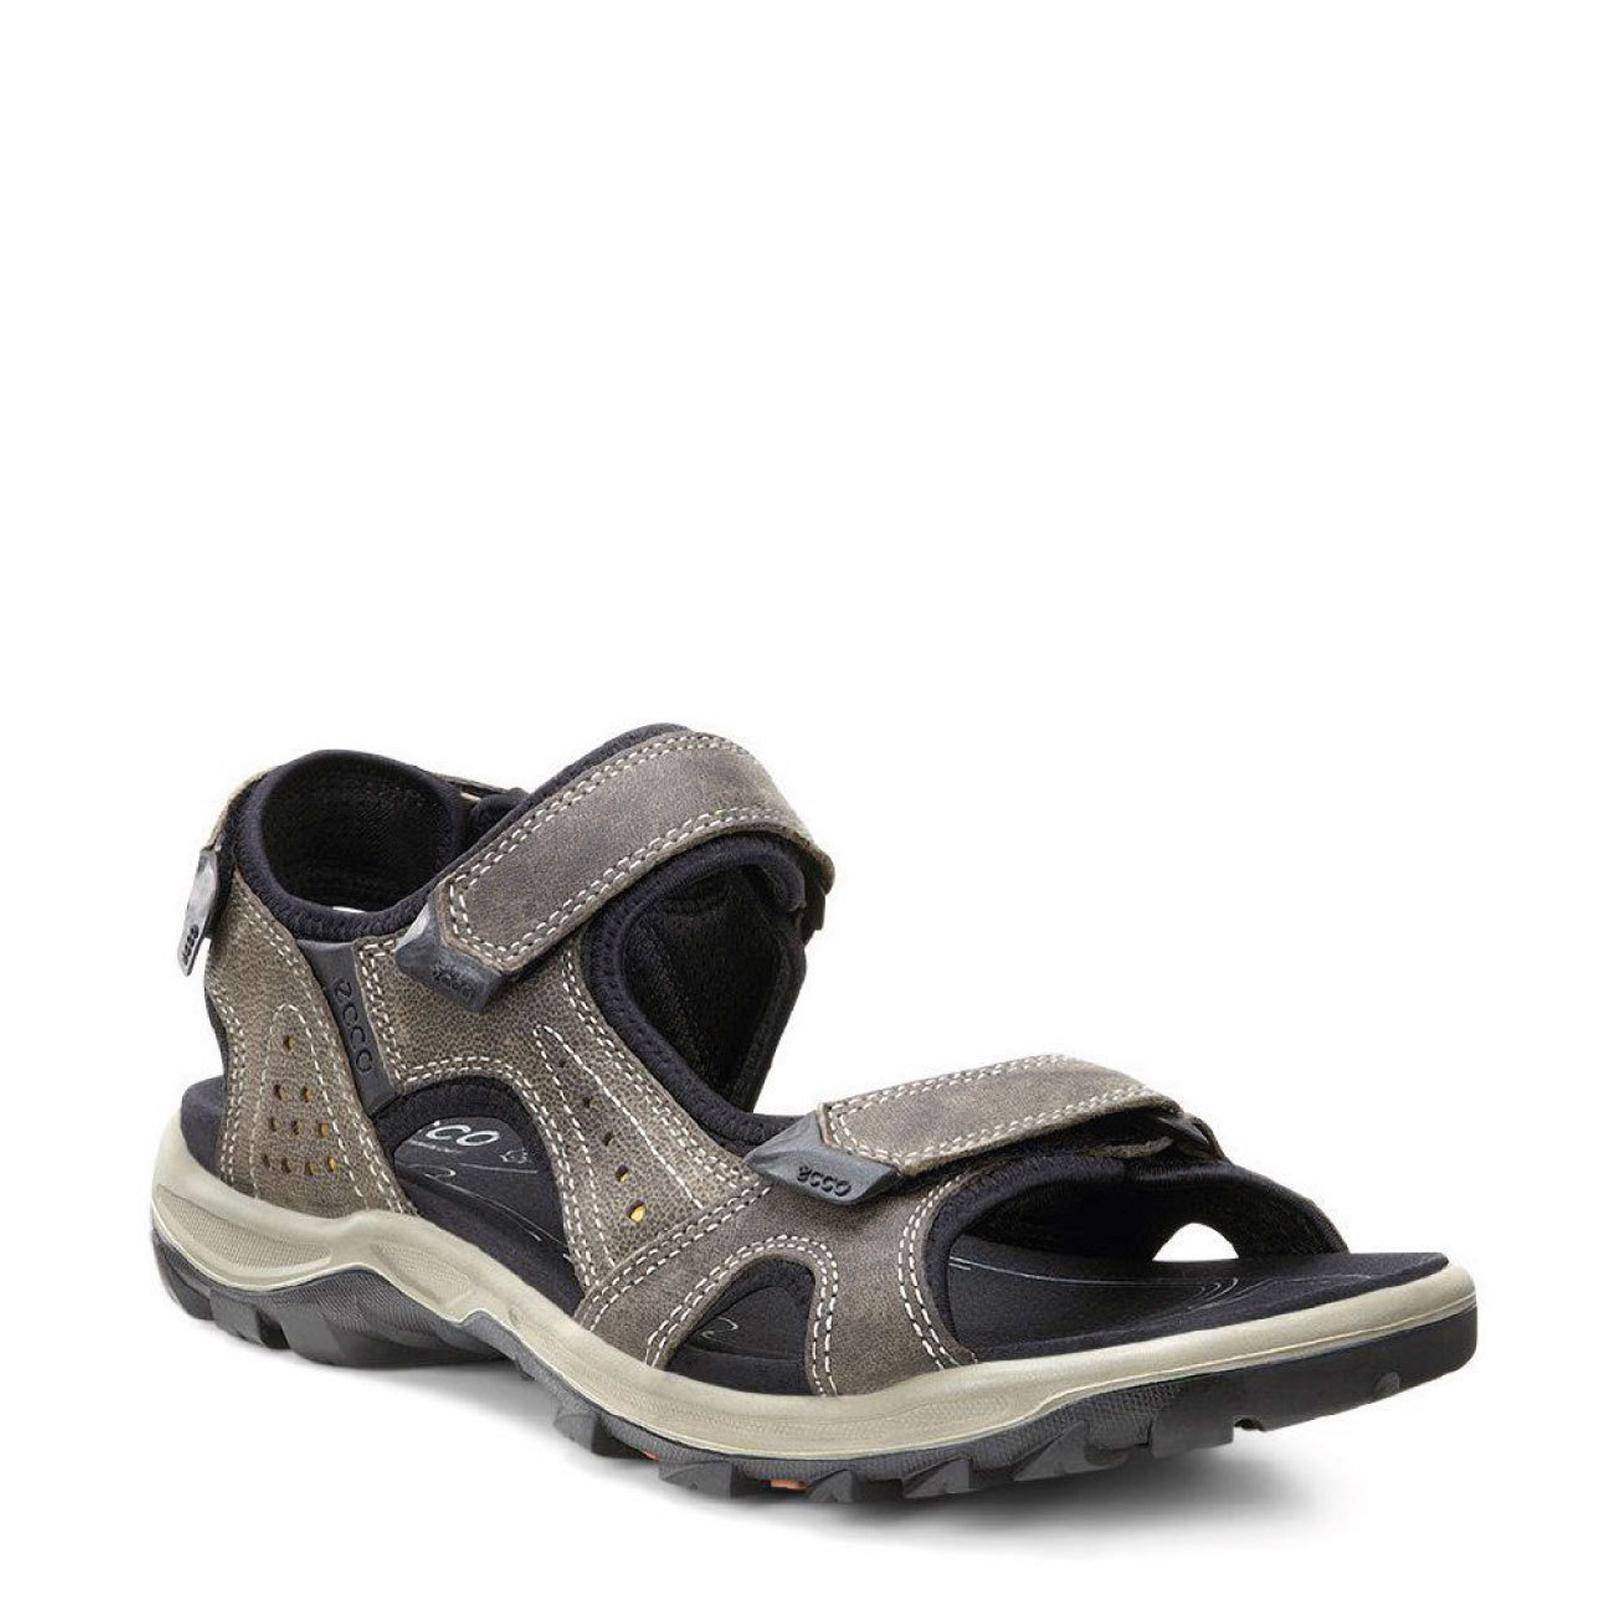 Sandales Ecco Offroad Andes Hommes Ii - Marine 7z6zZB